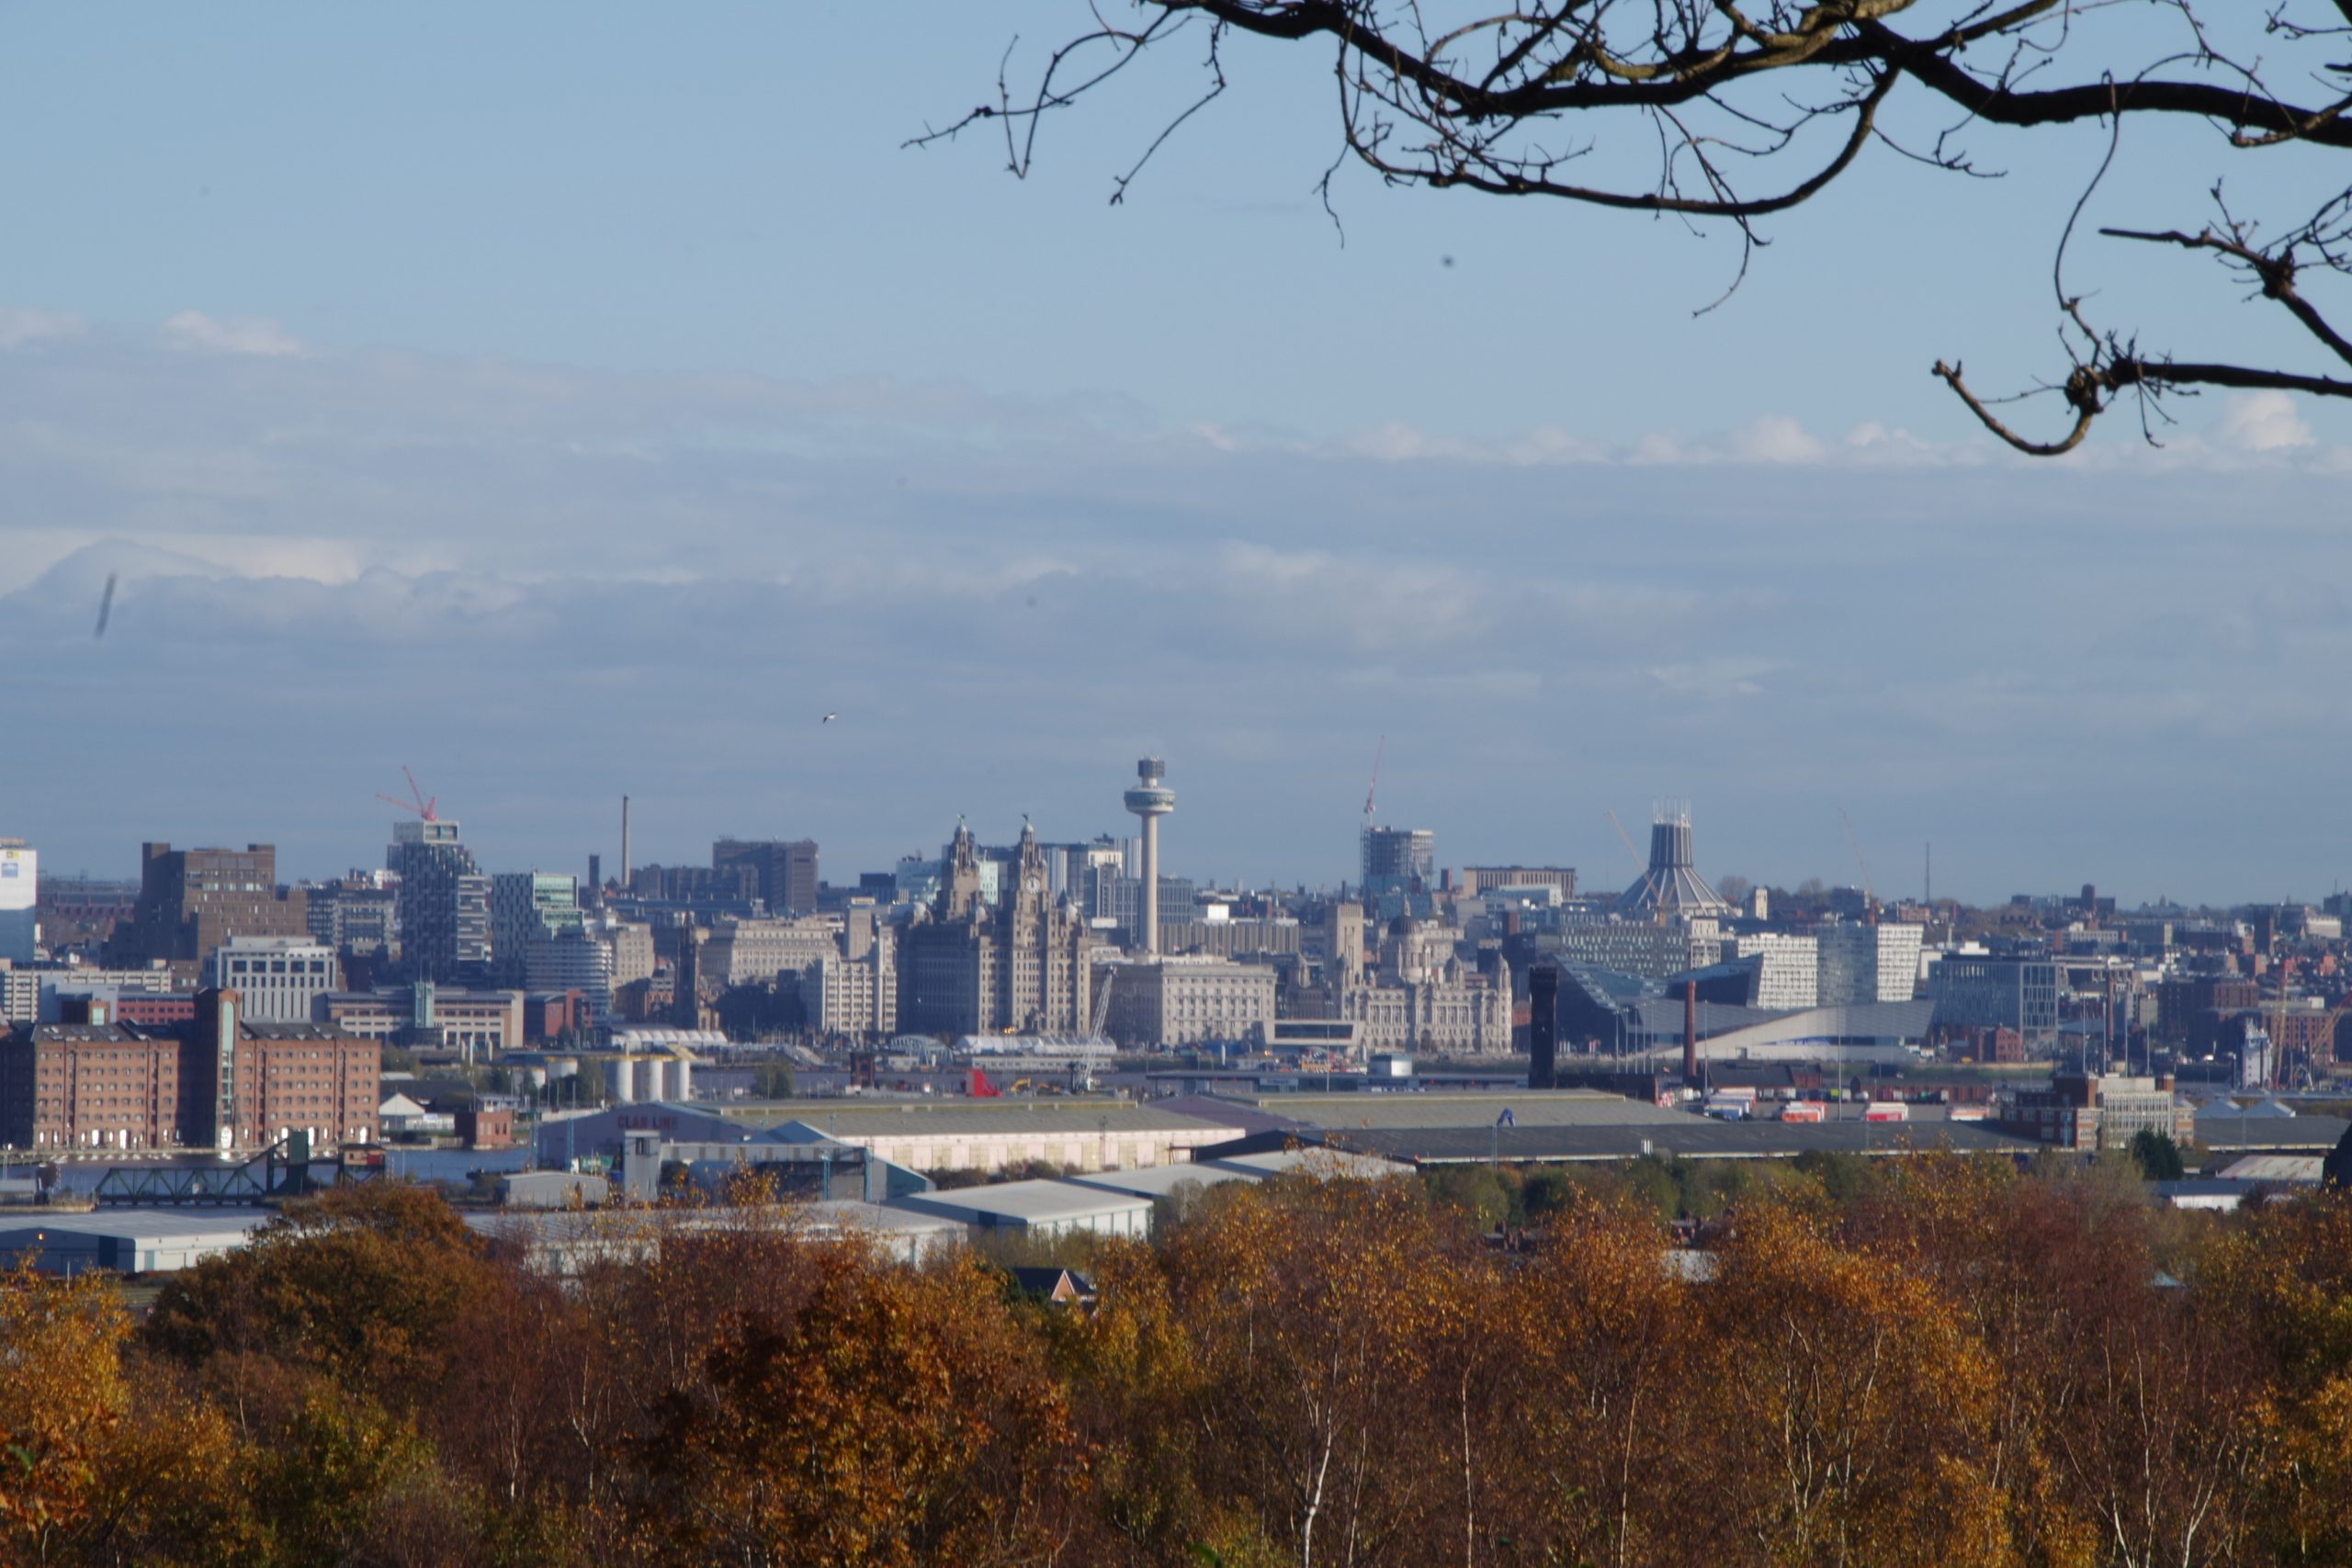 Liverpool from Bidston